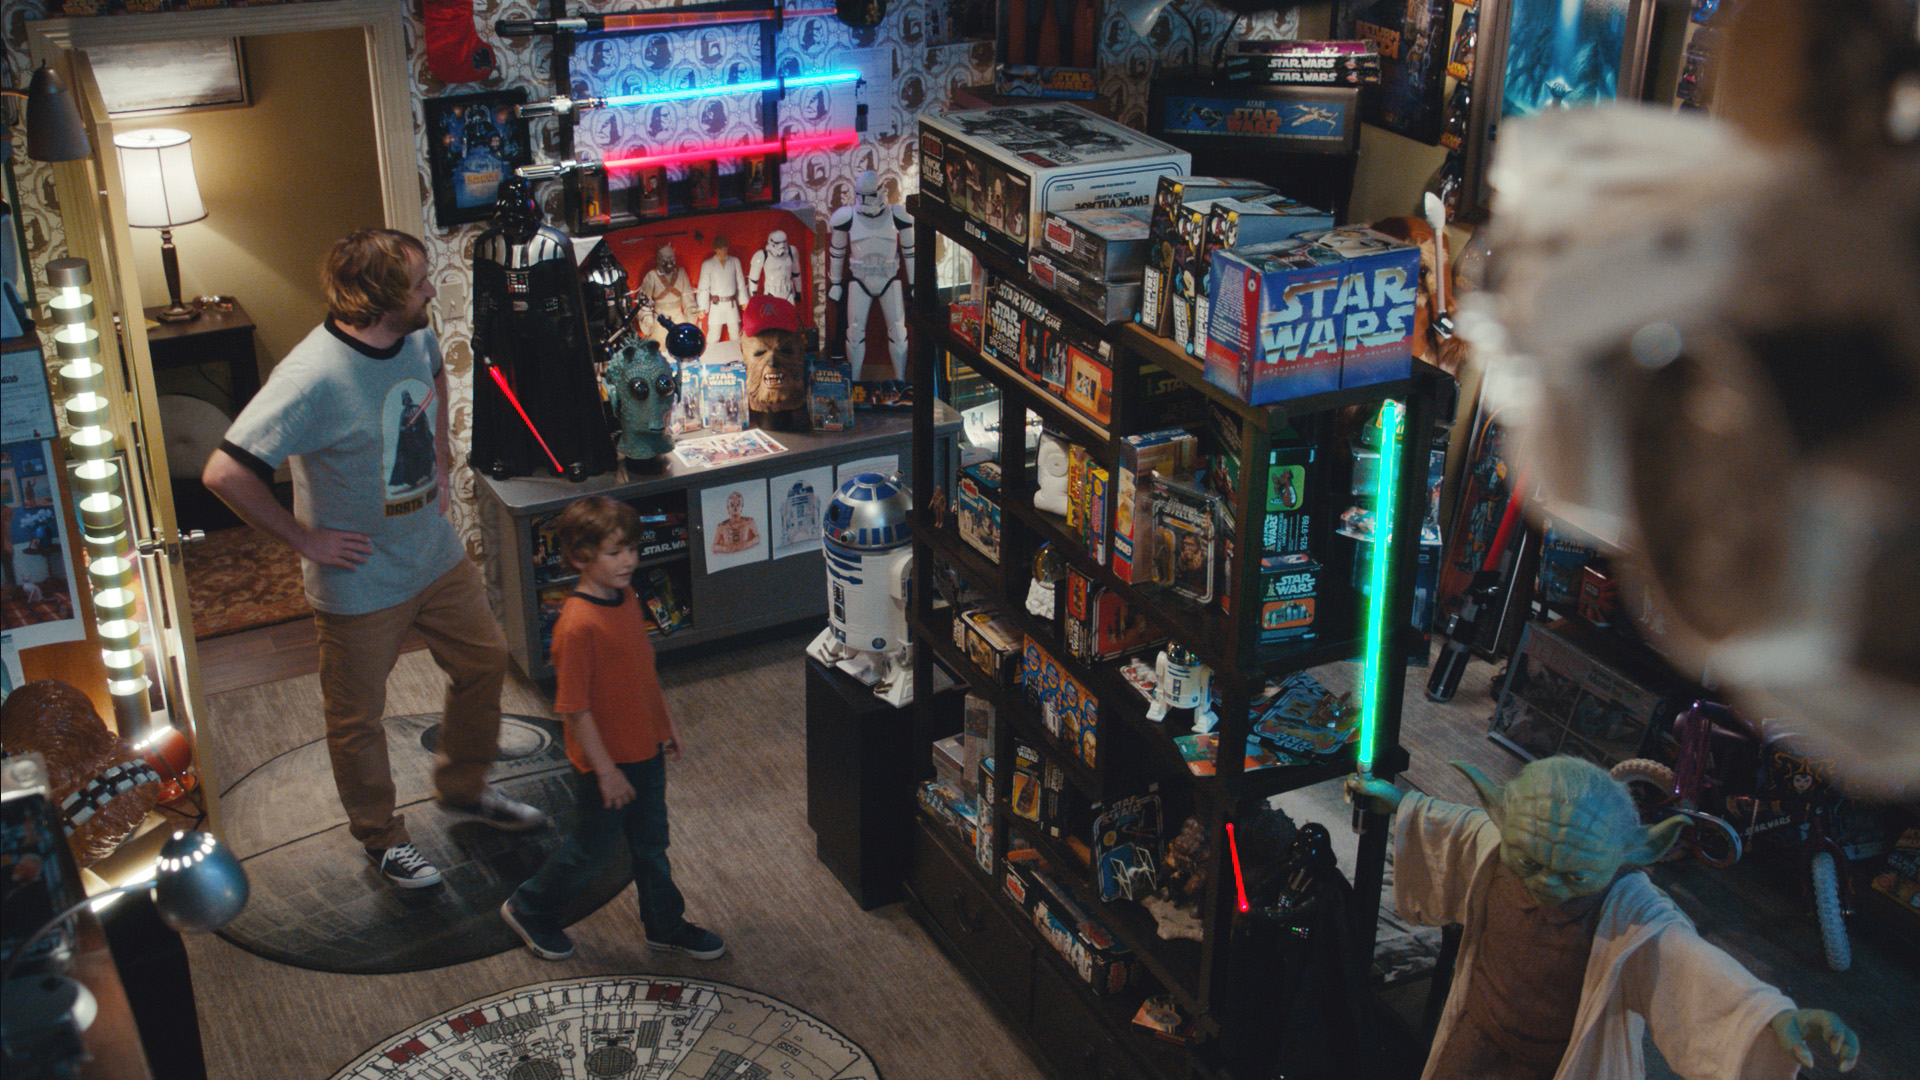 In the new commercials, a father shows his son his secret Star Wars Room for the first time and highlights one key item in his collection, the Star Wars KRAFT Macaroni & Cheese character boxes.